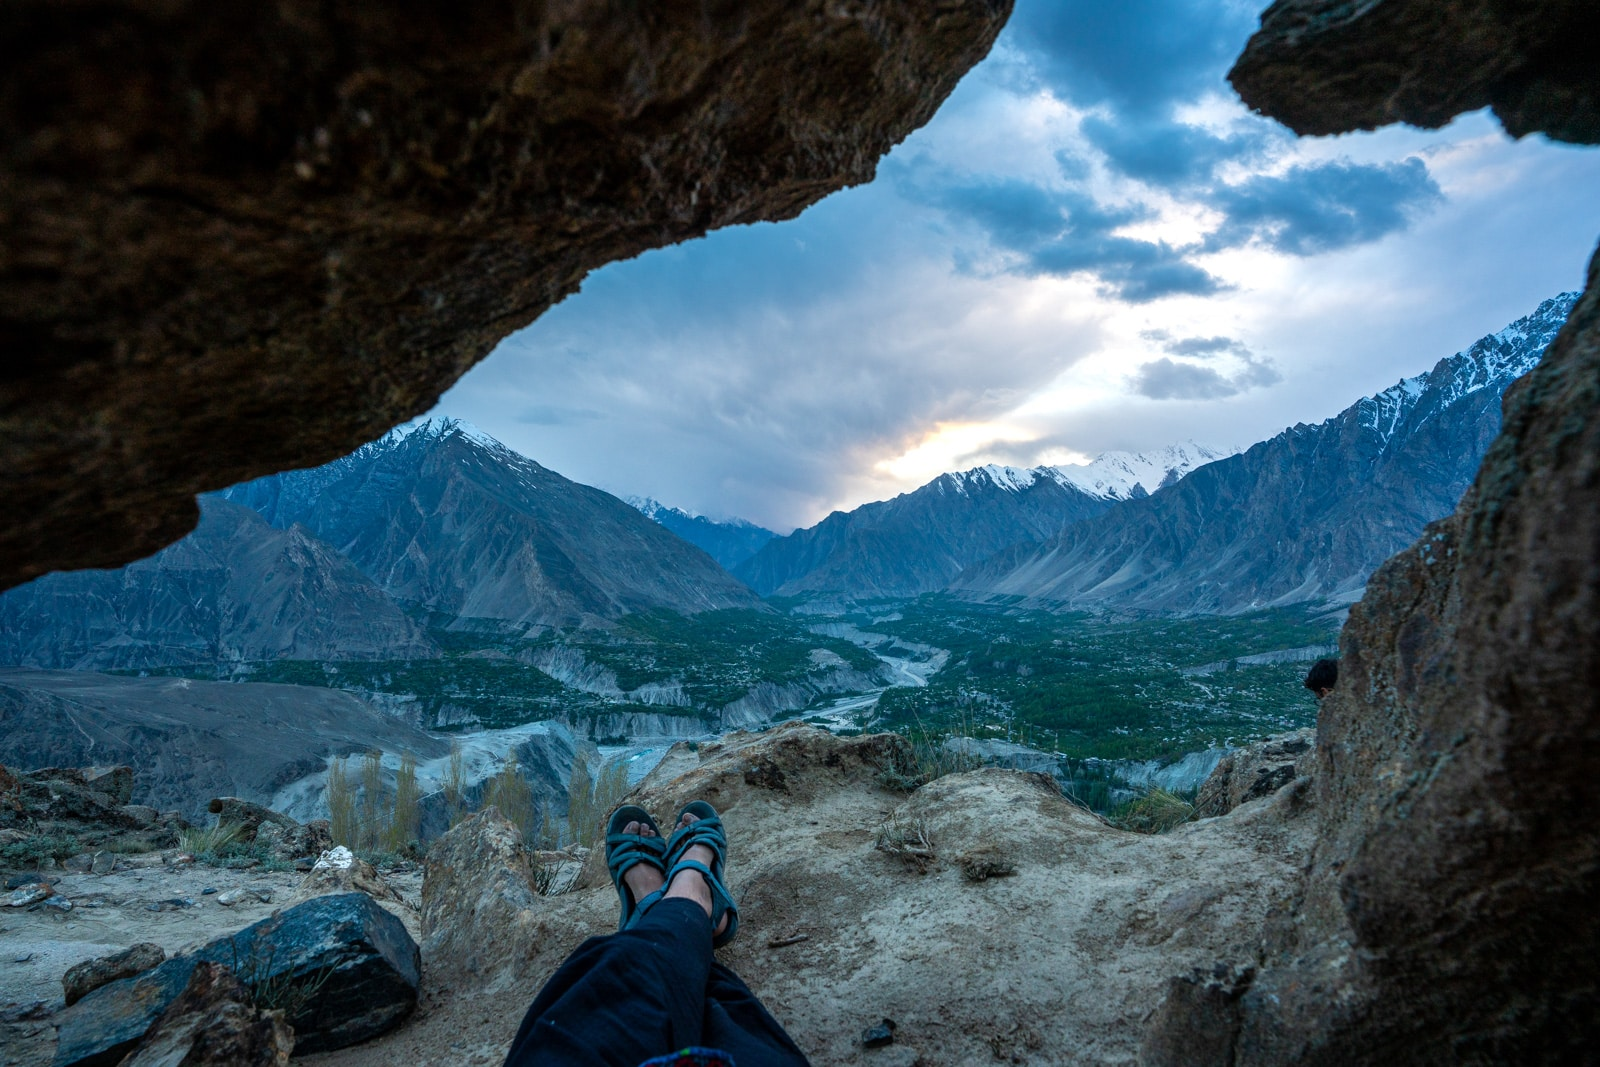 Feet and a view looking out over Hunza Valley, Pakistan